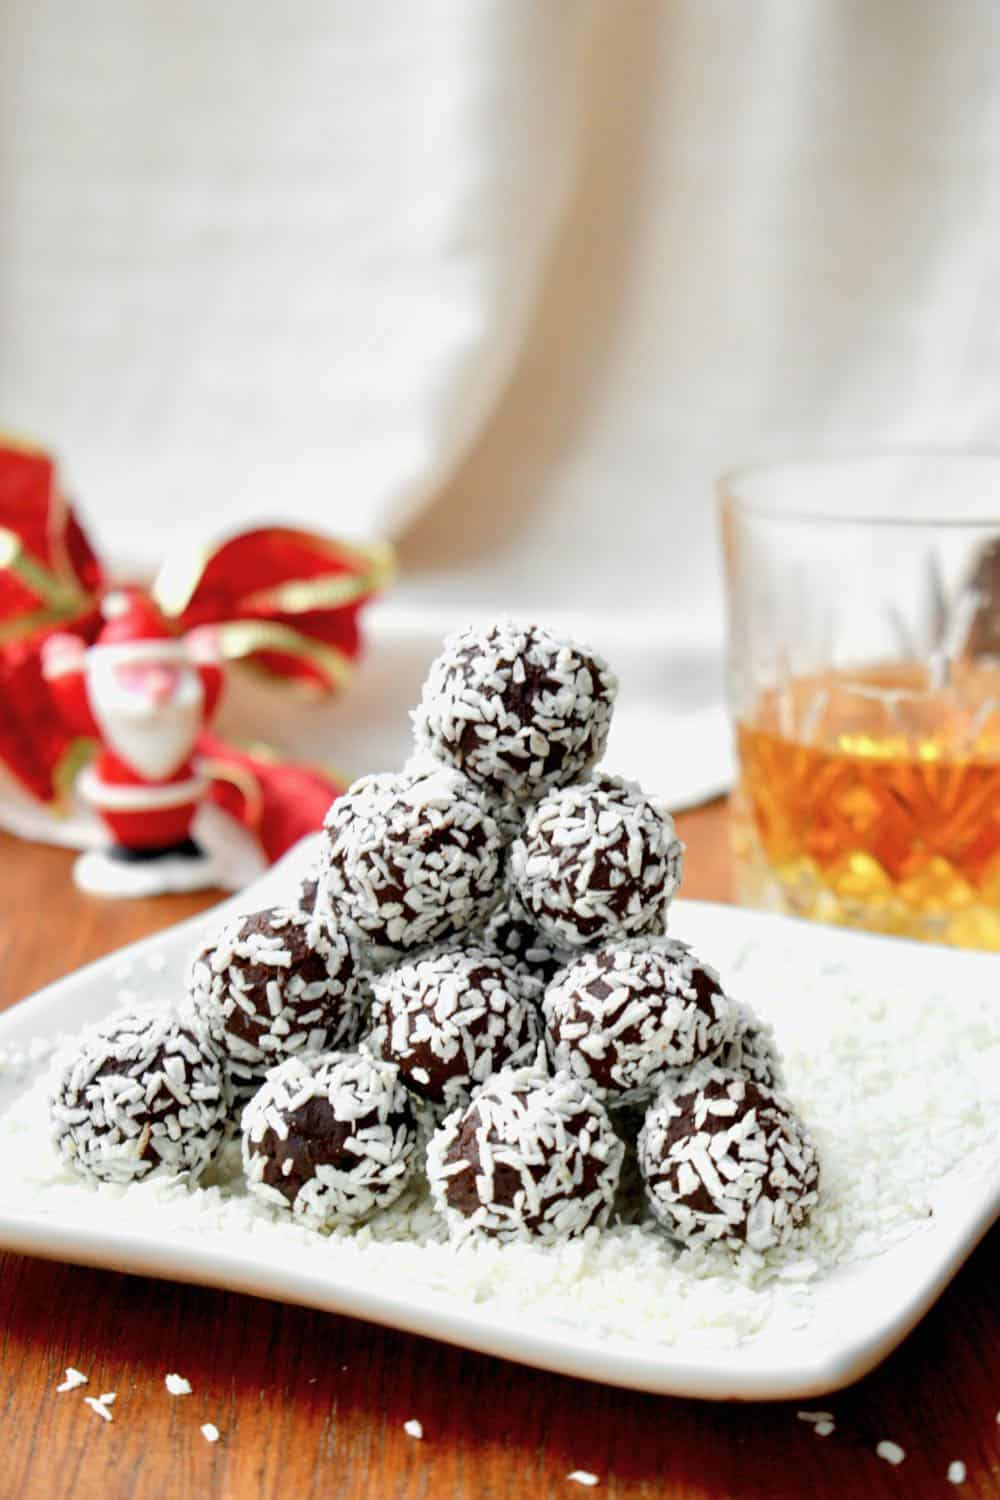 A pyramid of coconut covered rum truffles